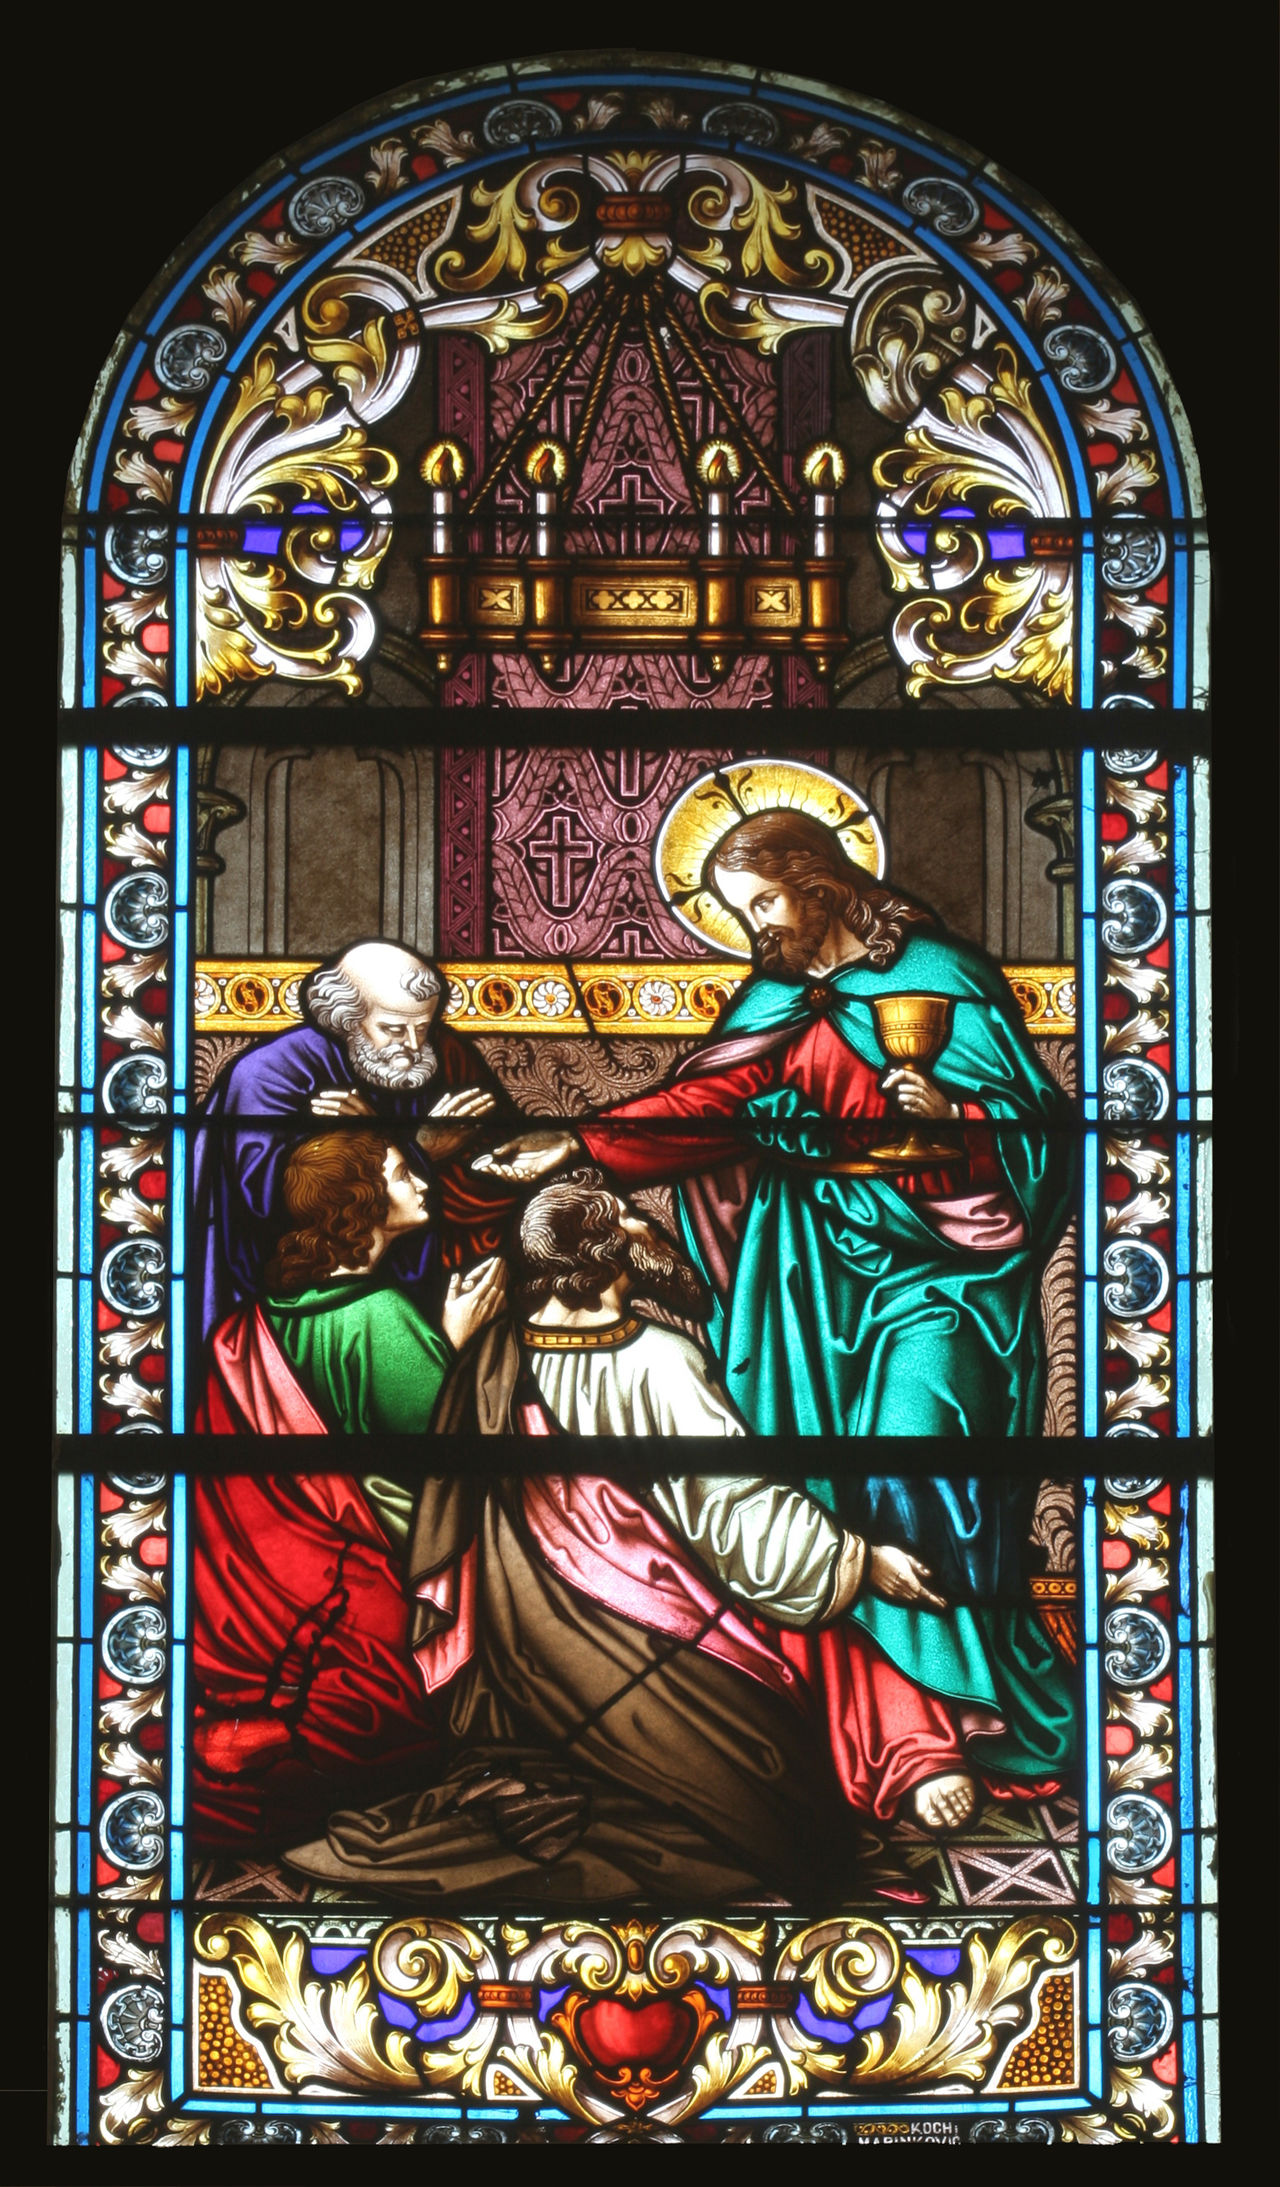 Jesus and the apostles Abbey Apostles Belief Christianity Church Convent Faith Glass Holy Jesus Patron Place Of Worship Religion Religious  Sacred Saint Spiritual Stained Window Windowpane Worship